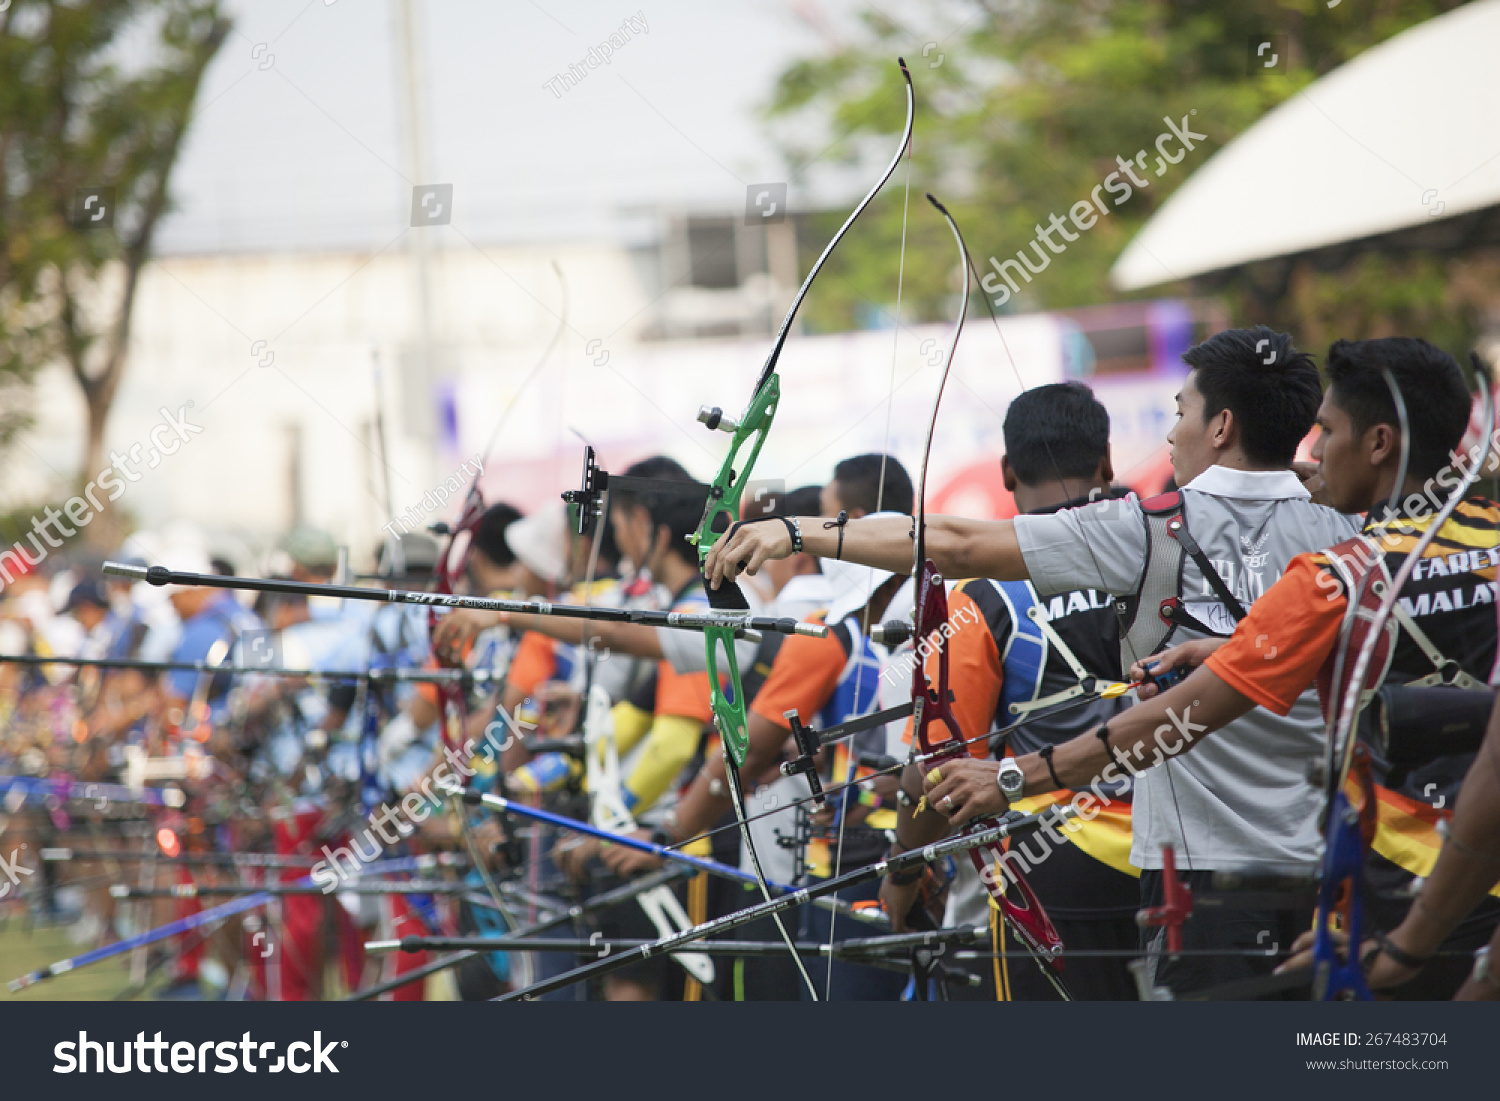 Bangkok Thailand March 15-22 2015 Unidentified archers in a row and shootin 2015 Asia Cup-World Ranking Tournament stage II at Hua Mak Sports Complex on March 18 2015 in Bangkok Thailand